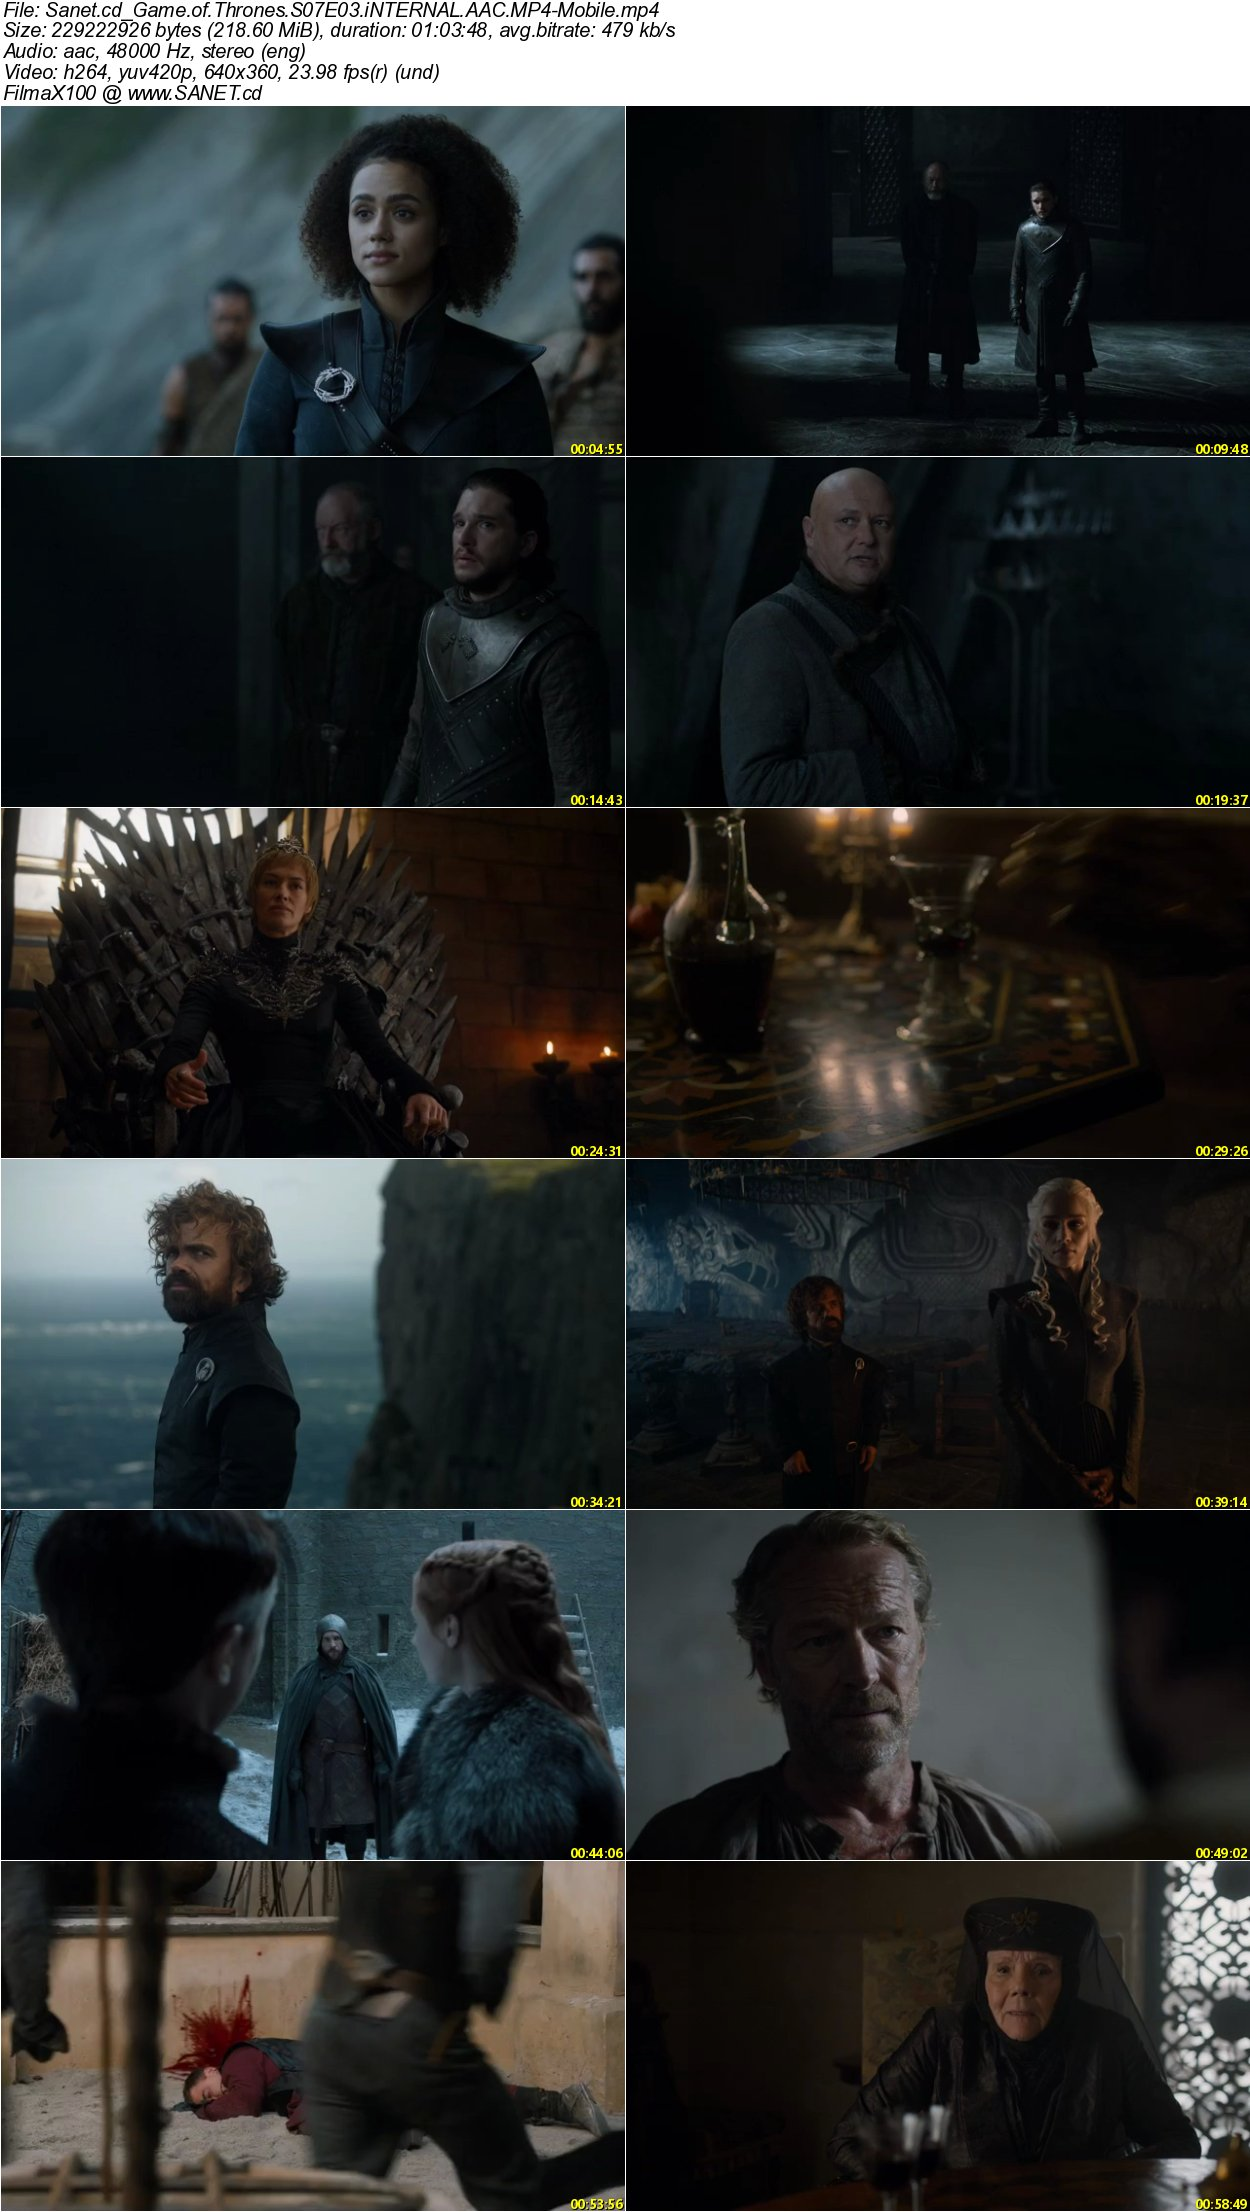 game of thrones 1080p x265 index